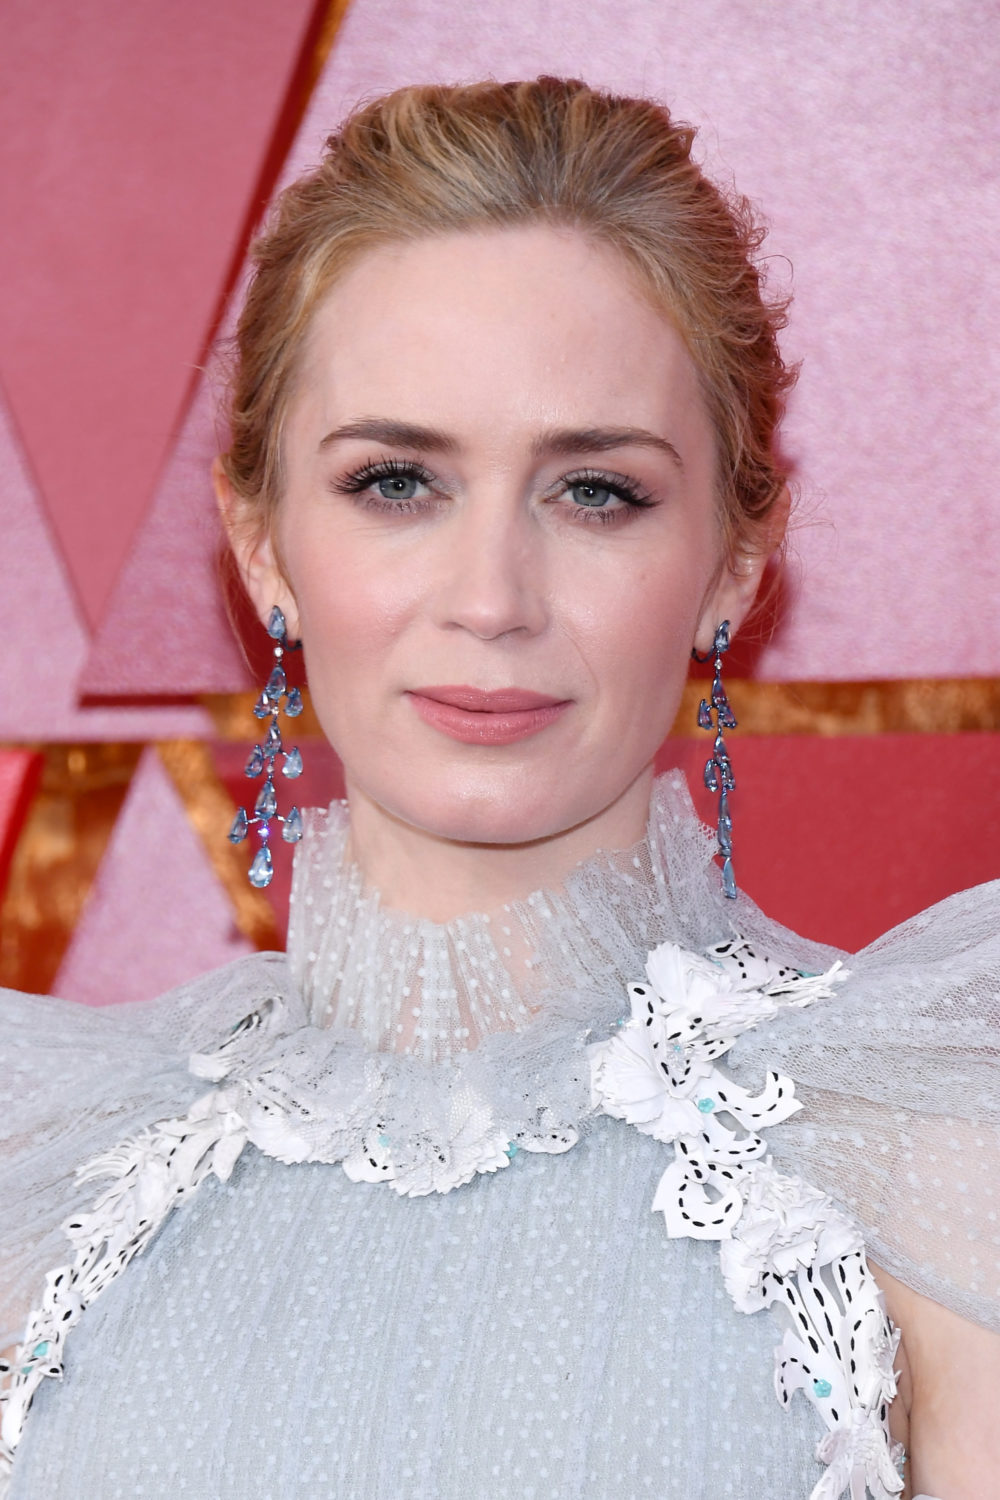 Emily Blunt slayed the Oscars red carpet in this Mary Poppins-inspired gown